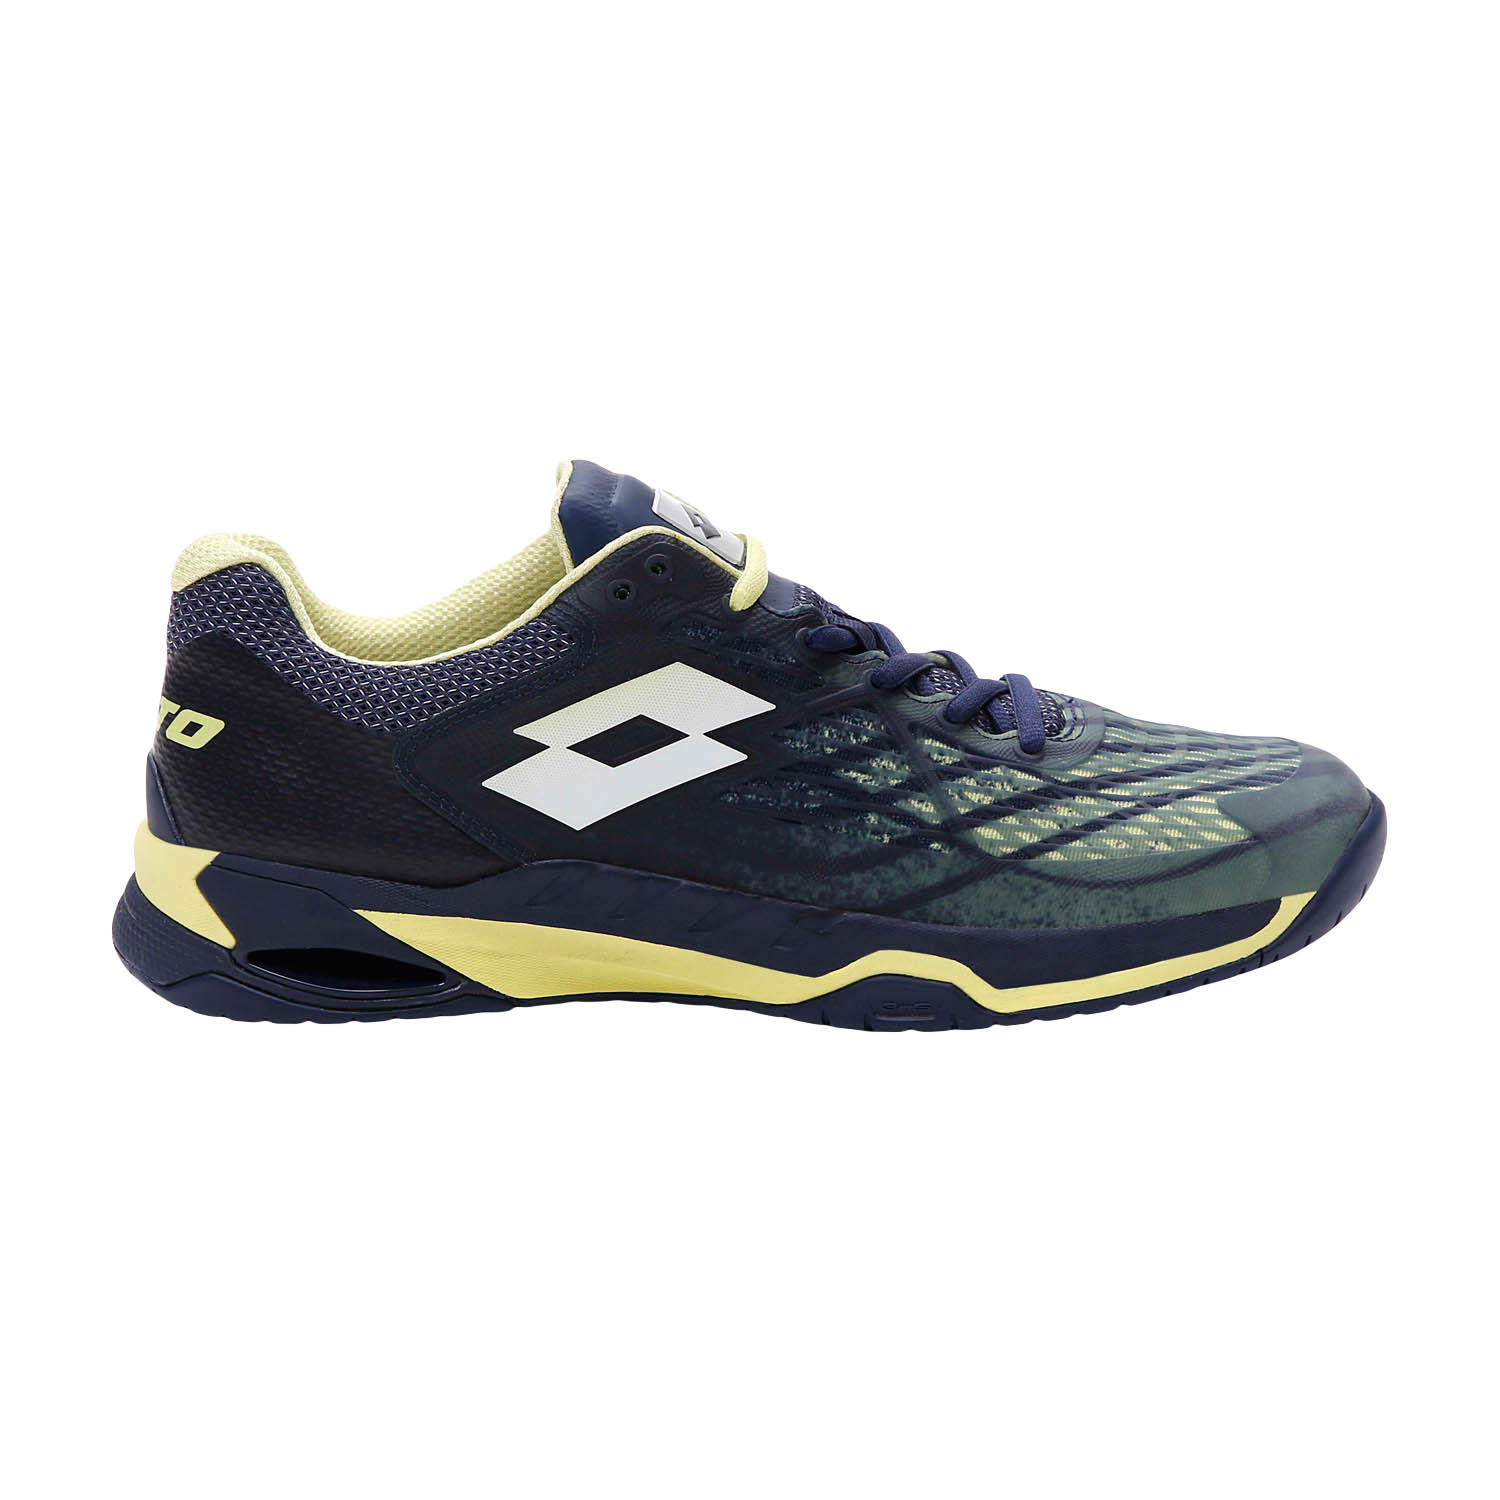 Lotto Mirage 100 Speed - Navy Blue/Yellow Neon/All White